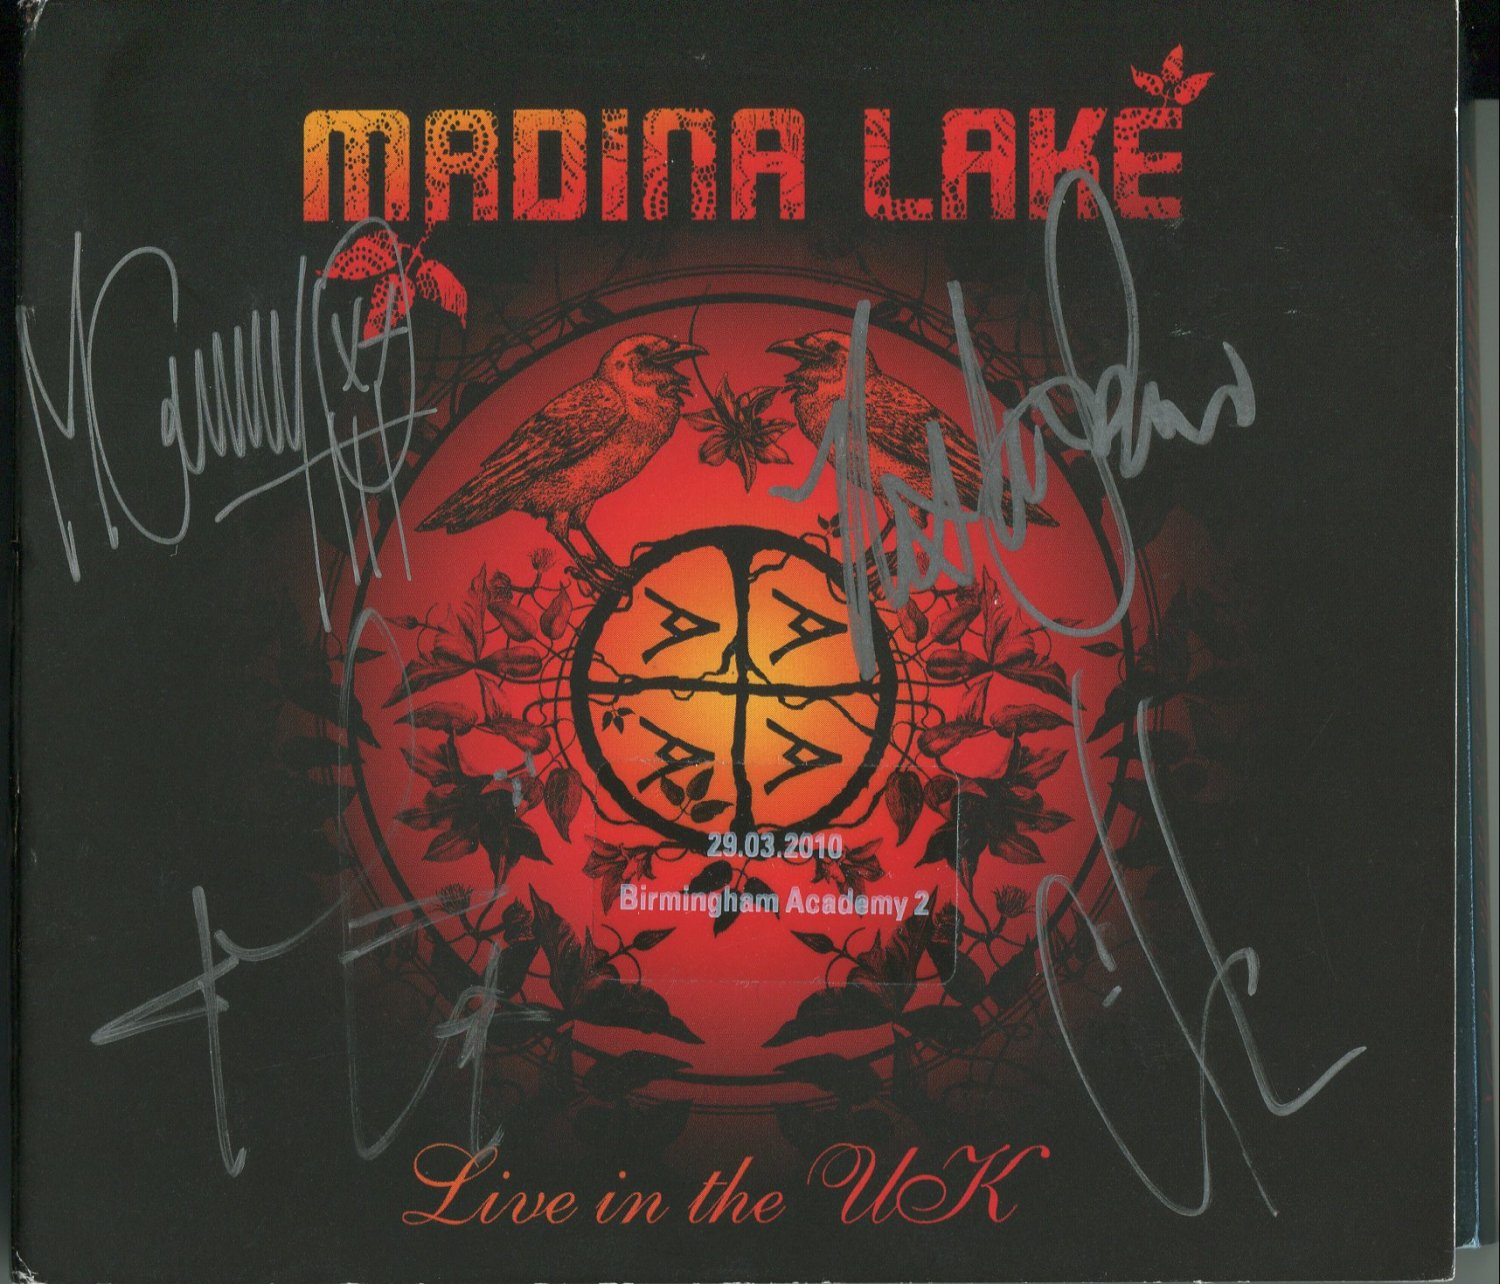 Madina Lake FULLY SIGNED 2CD Album Set + Certificate Of Authentication 100% Genuine